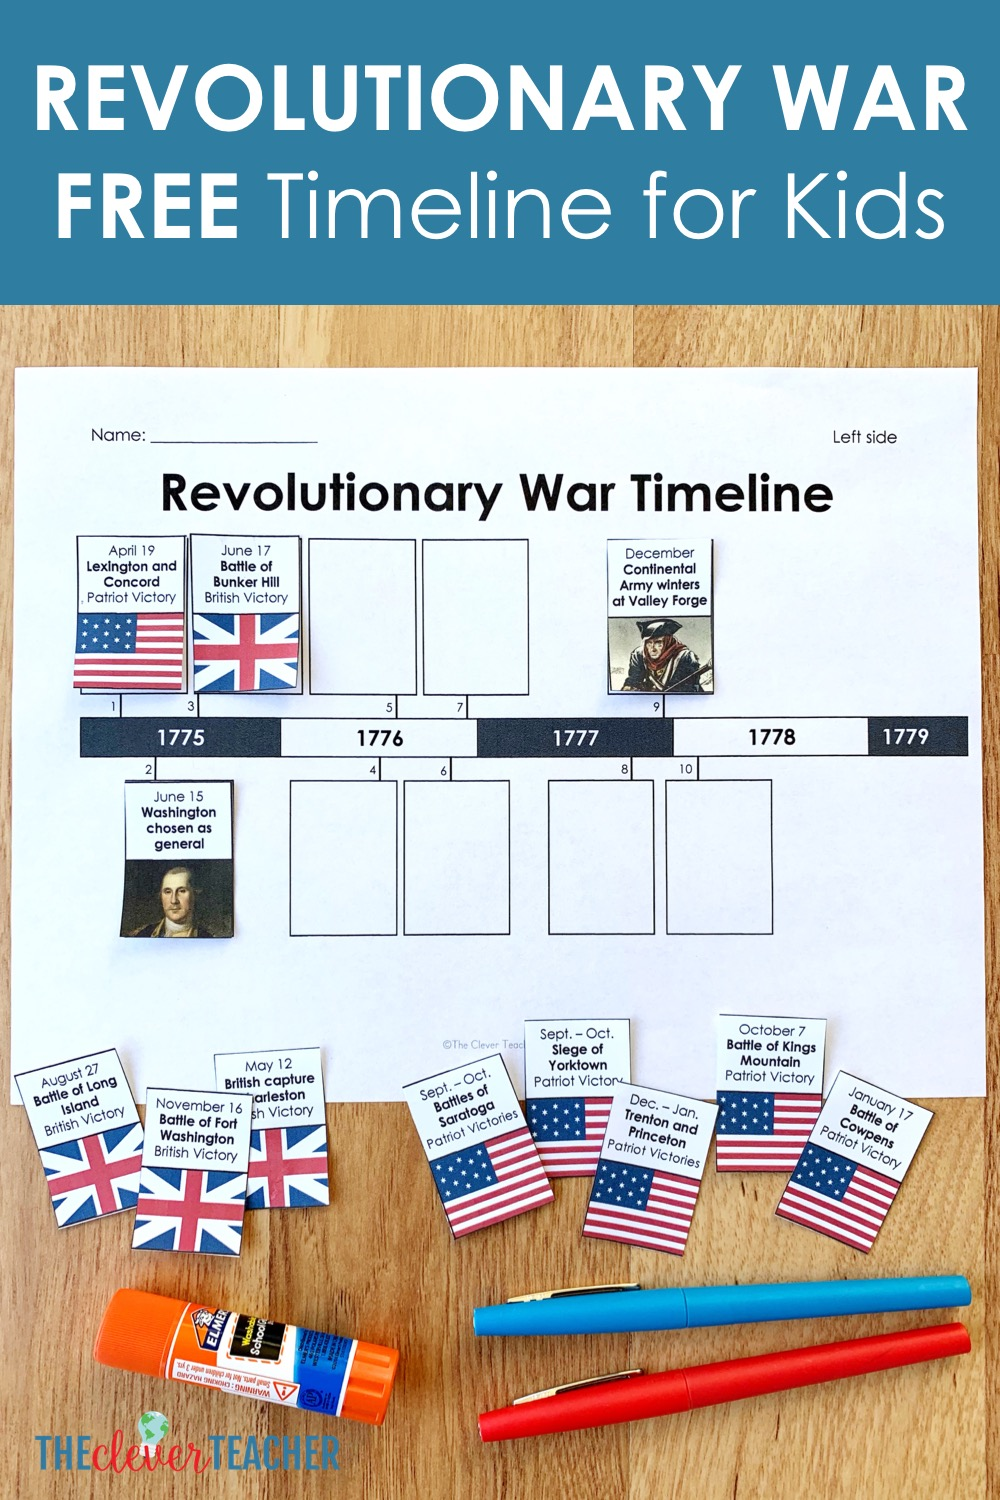 revolutionary war timeline for kids  free from the clever